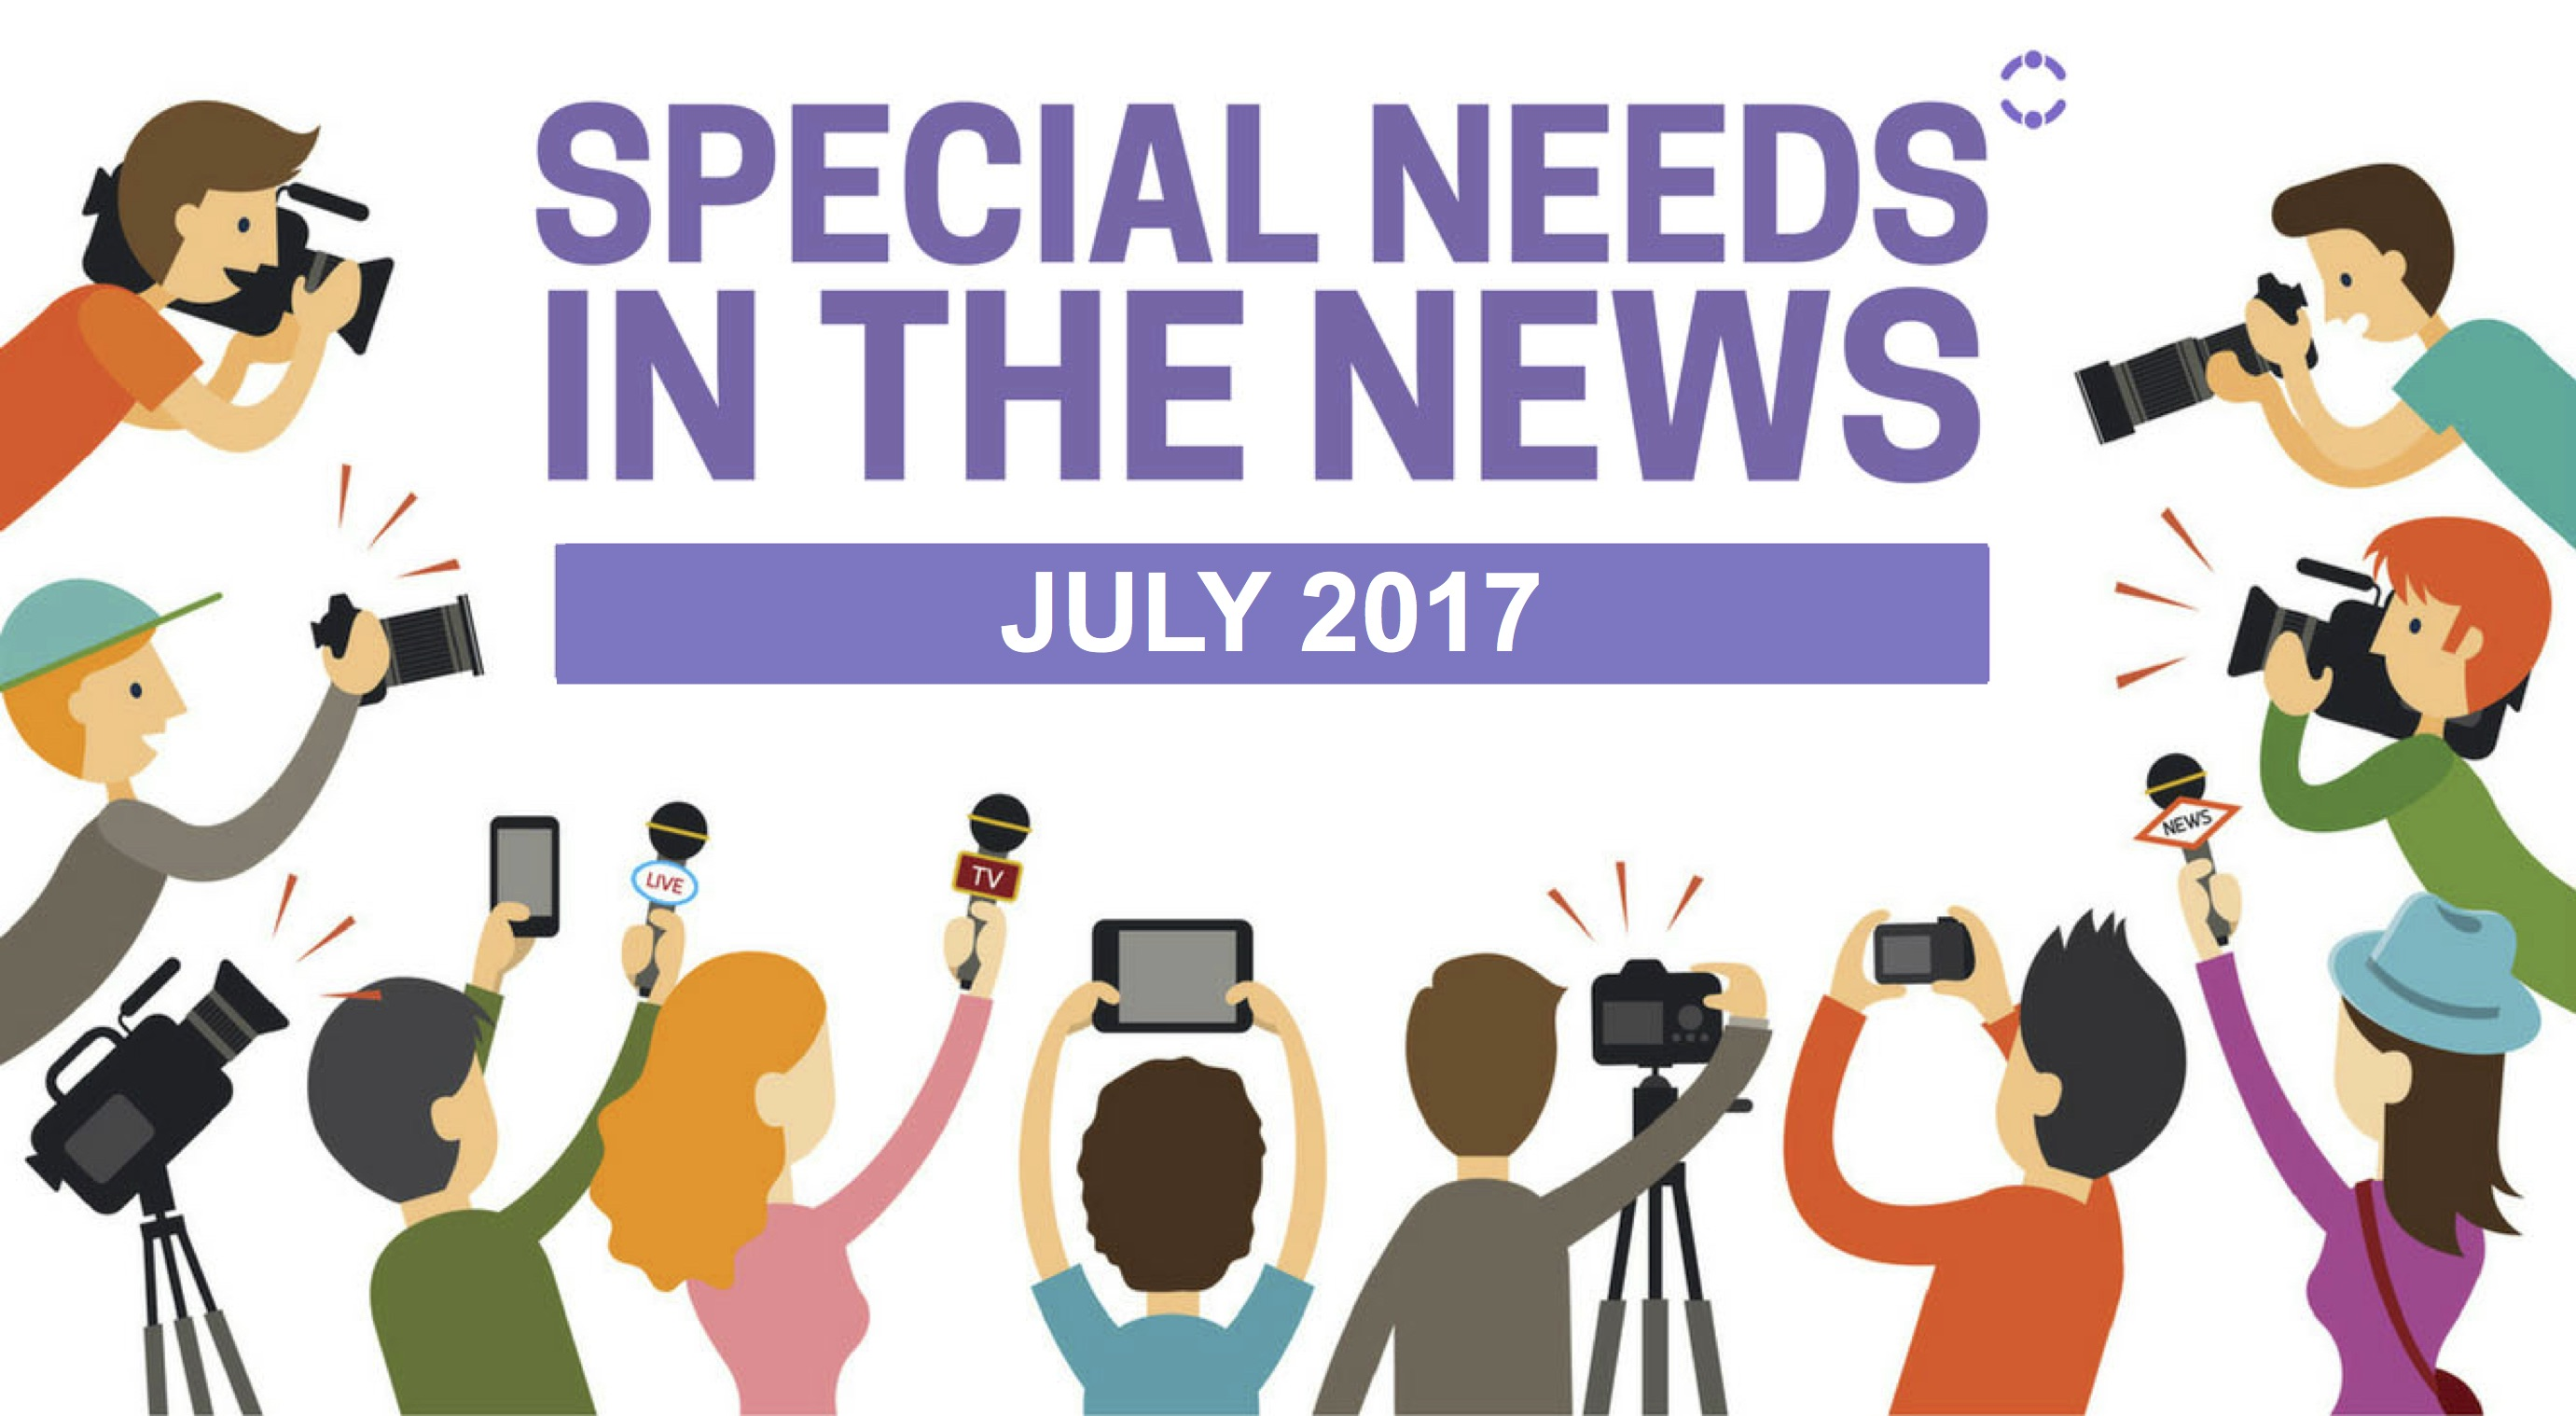 Special Needs News Stories from June 2017